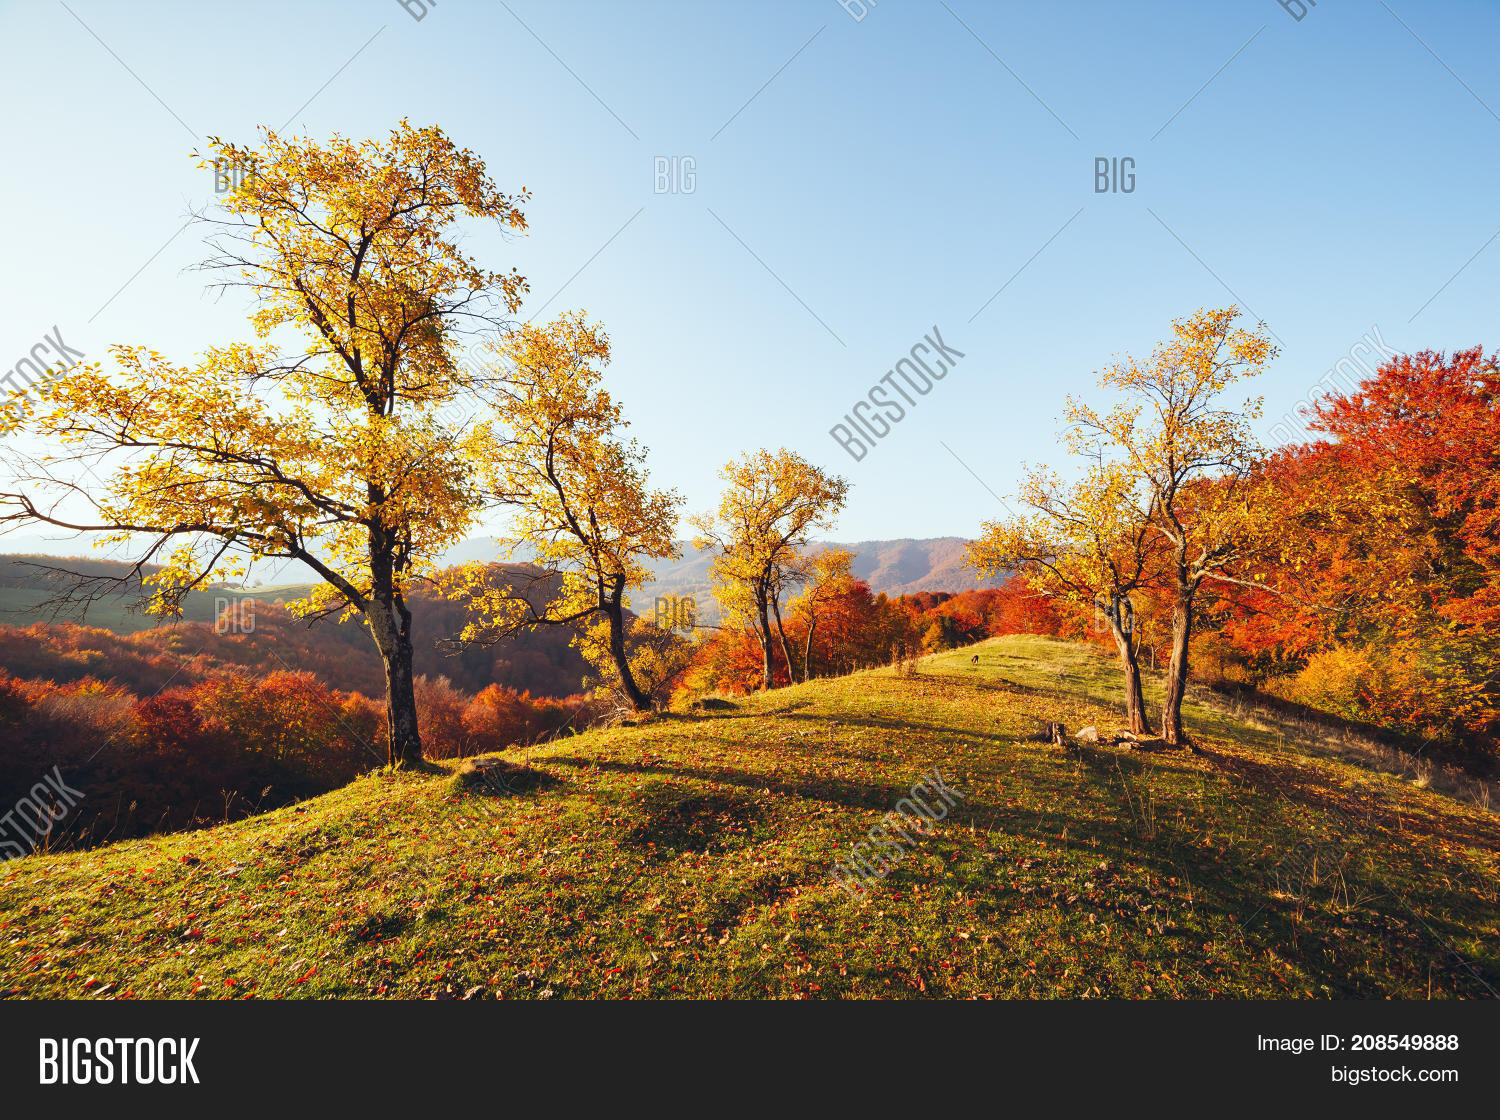 Stunning Image Bright Image Photo Free Trial Bigstock